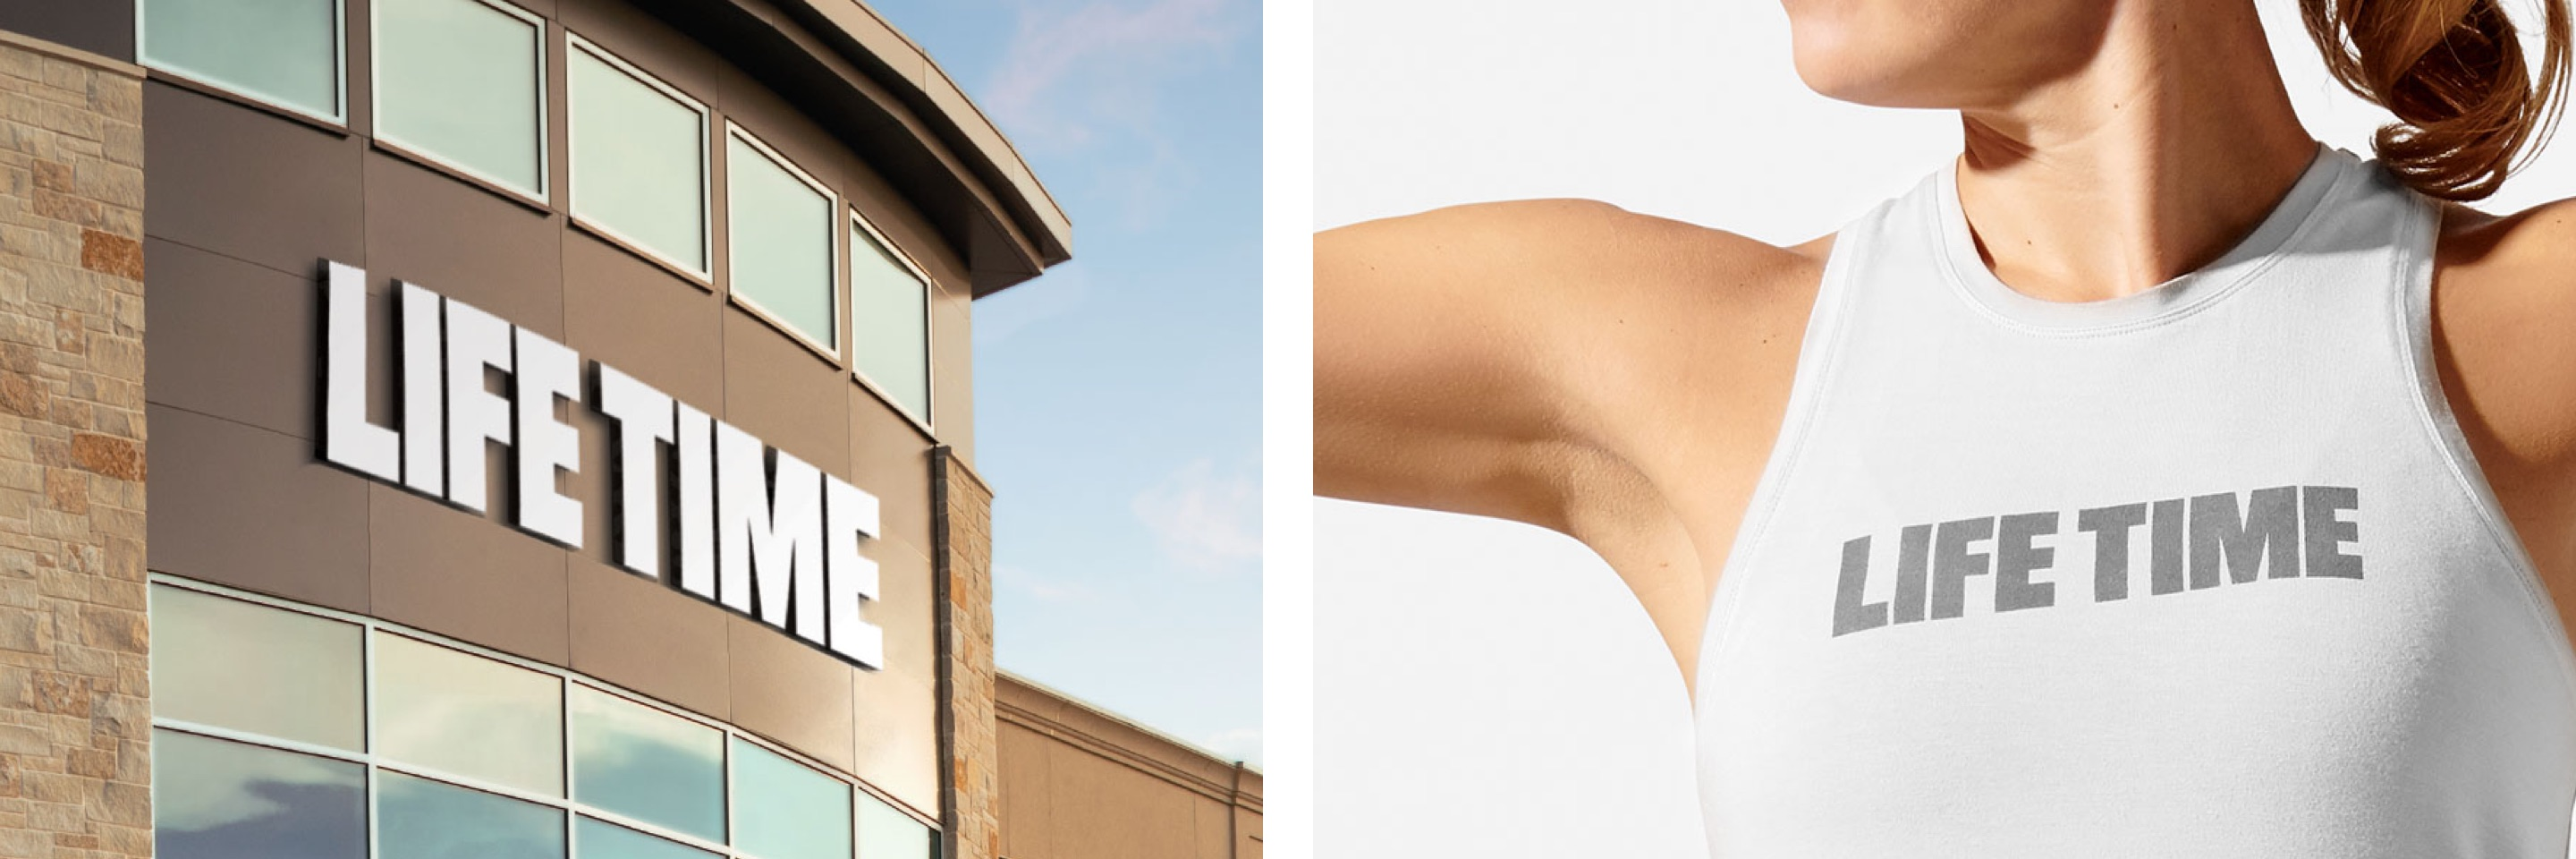 an image showcasing the Life Time logo on on a Life Time building, next to an image of a women wearing a white tank top showcasing the life time logo on the front